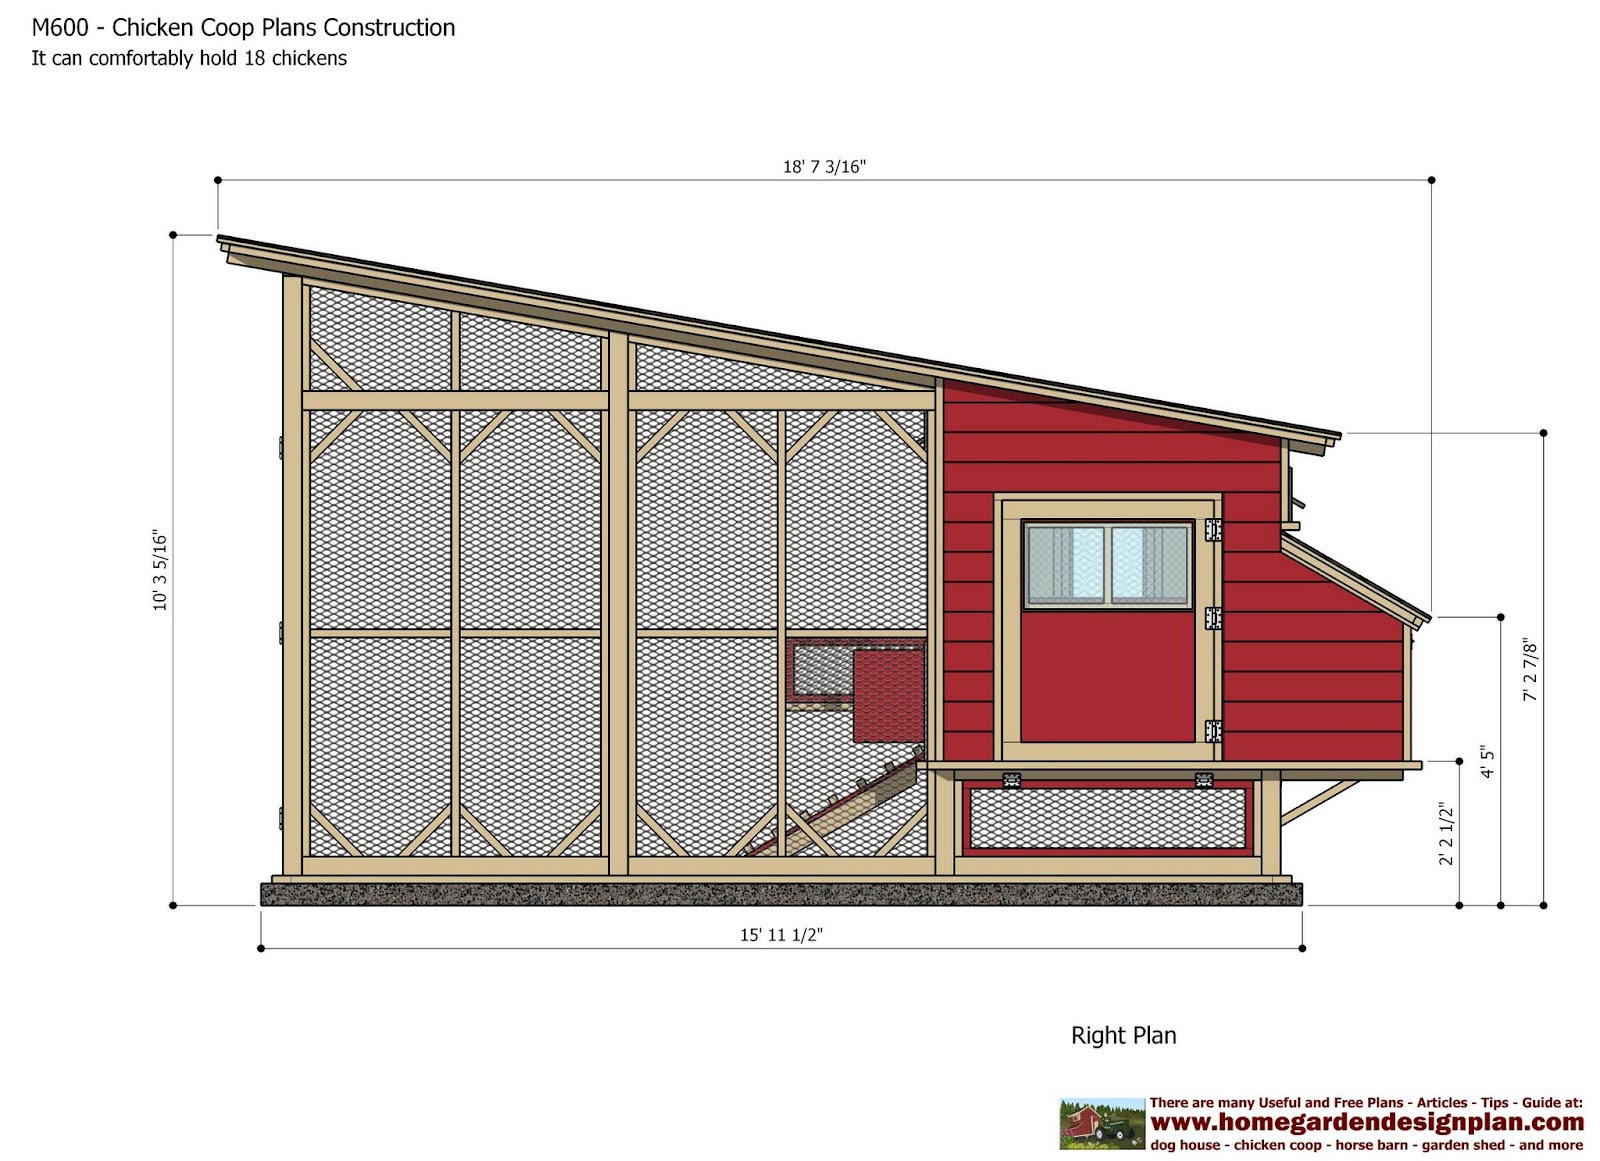 home garden plans m600 chicken coop plans construction